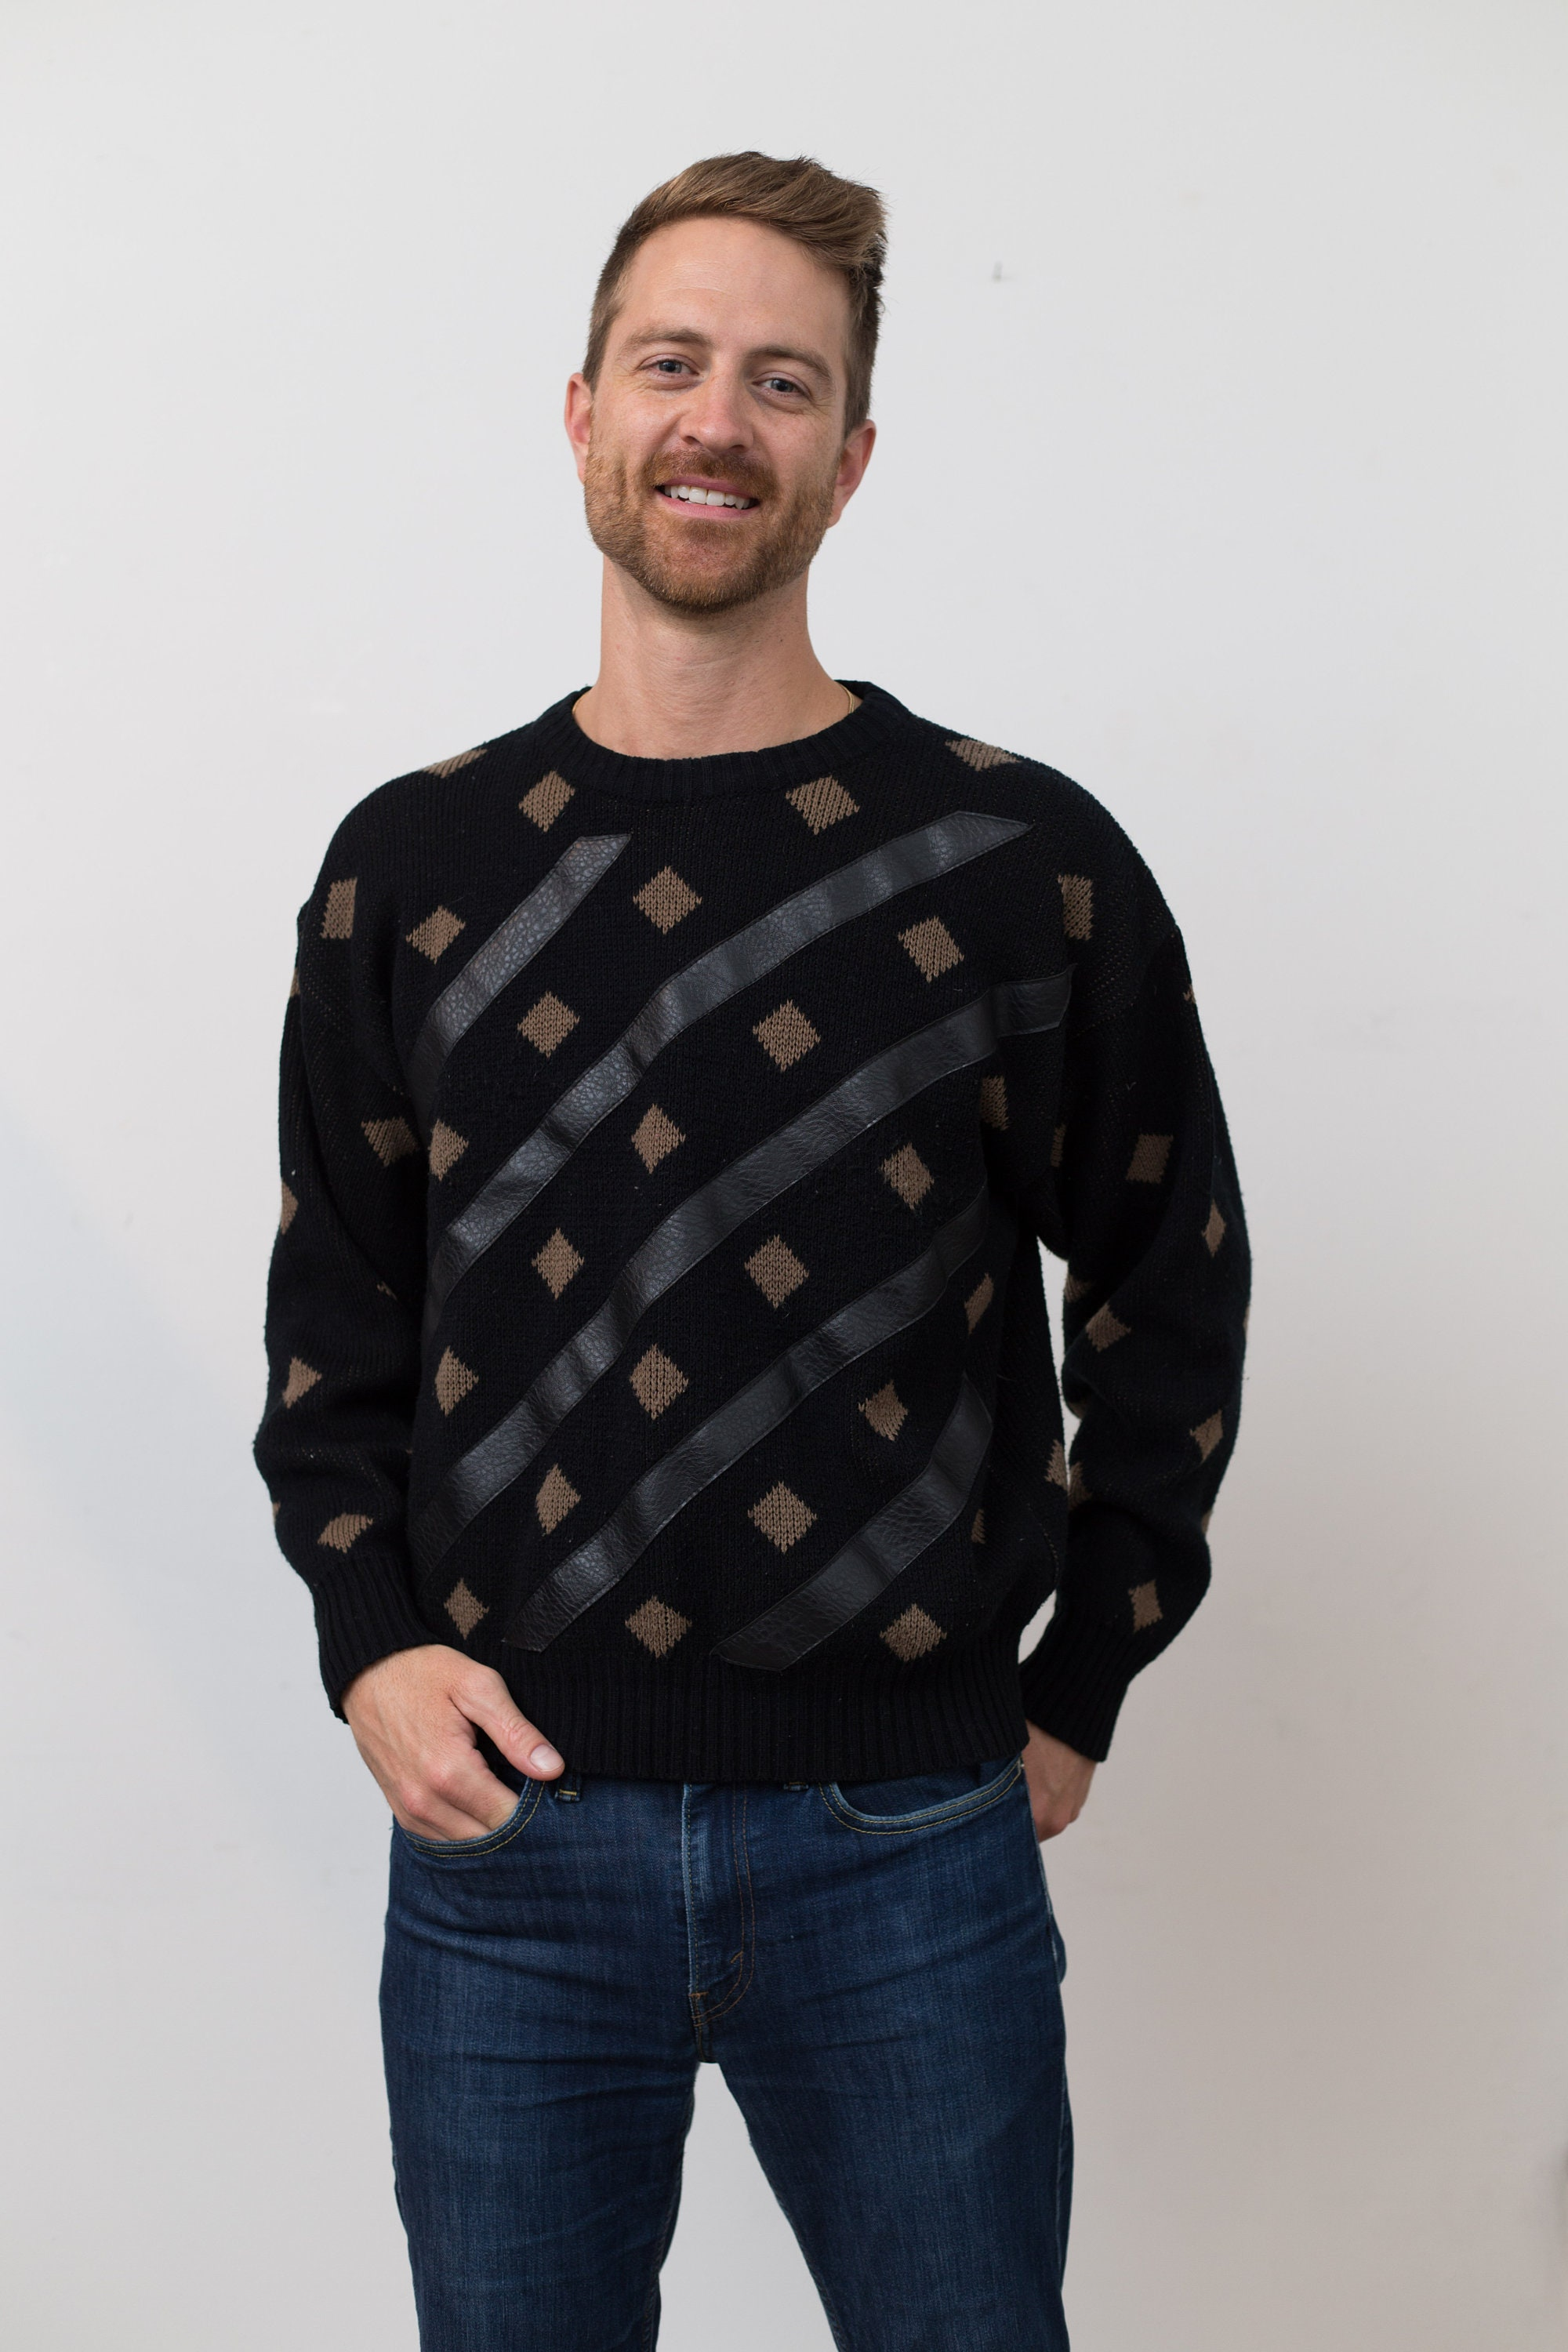 9ad92847b41 Vintage Bongo Sweater - Black and Brown Men's Crew Neck Pullover with  Square and Stripe Geometric Pattern Style - Crew Collar Jumper